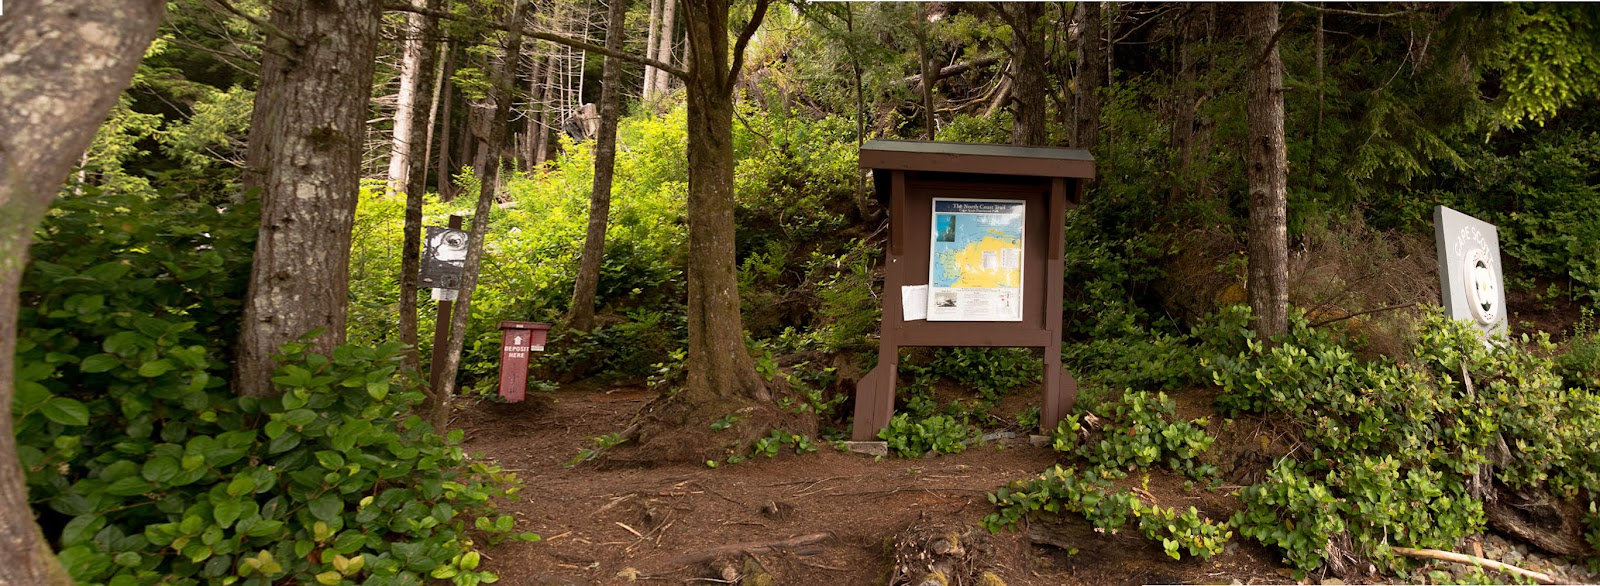 North Coast Trail trailhead at Shusharite Bay